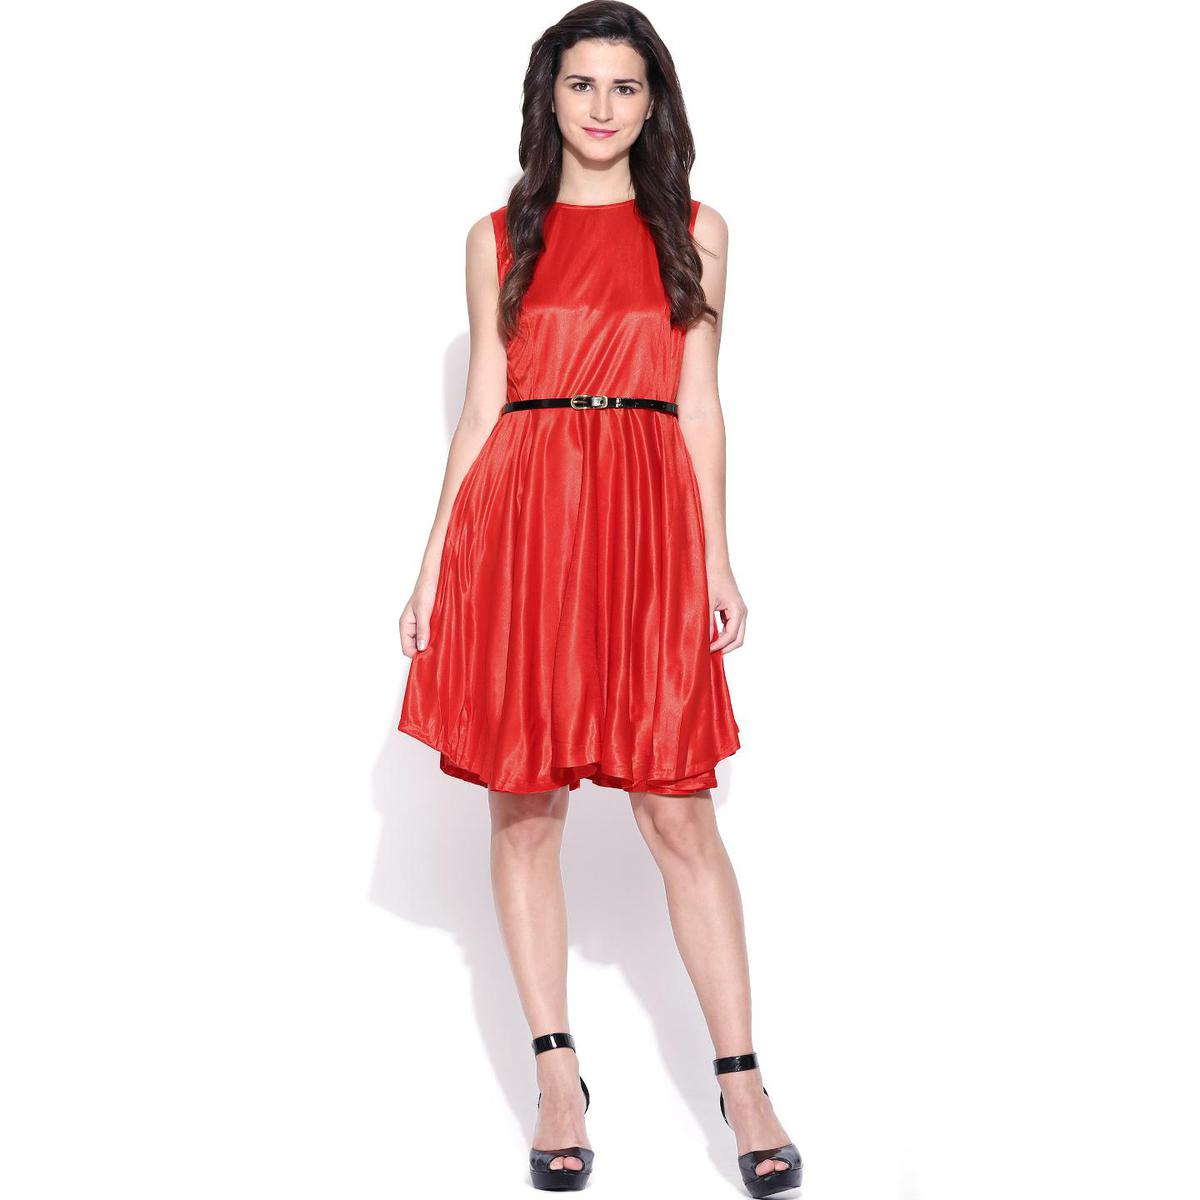 Girlyk Aurika - Red Colored Casual Wear Polyester Top